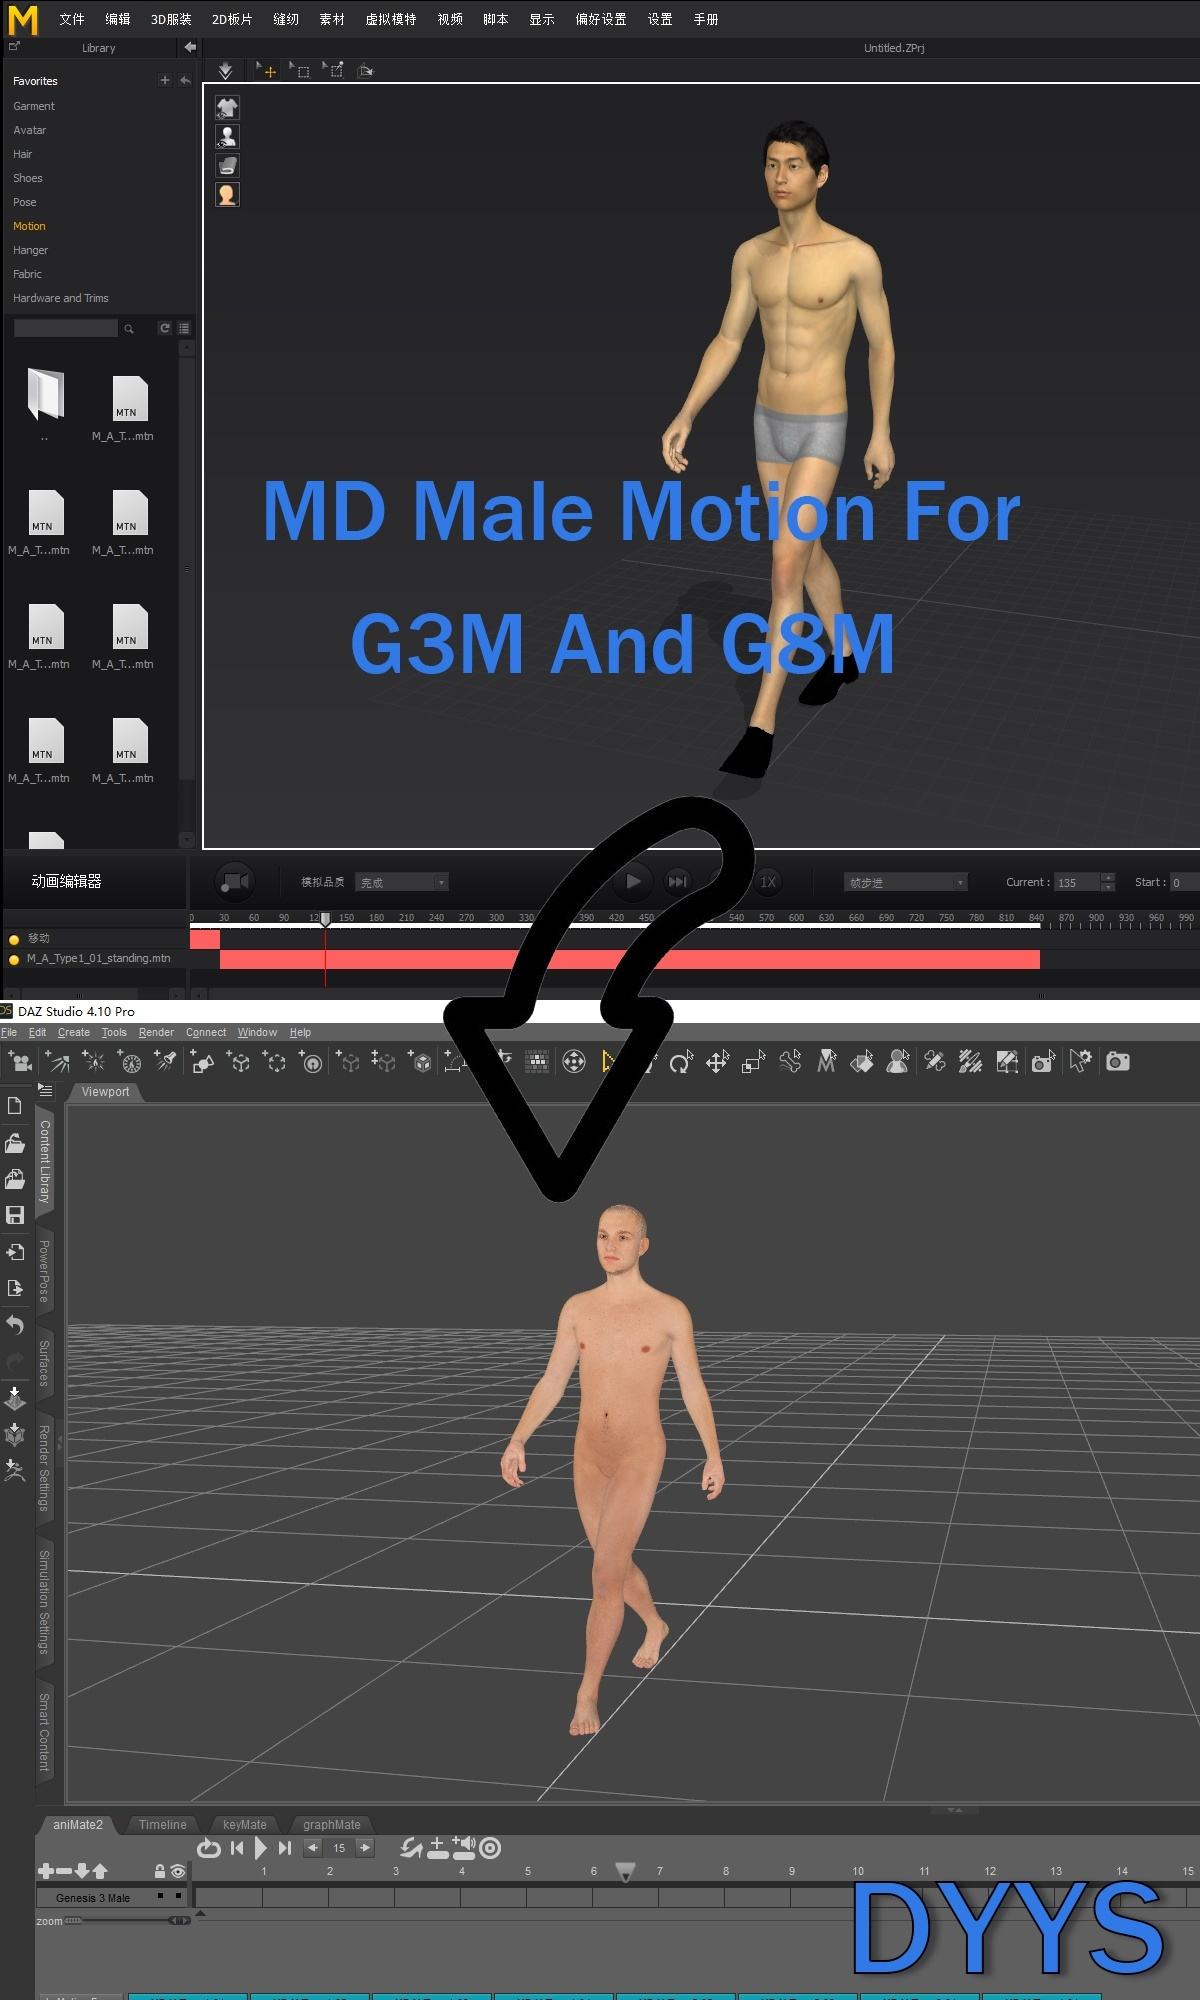 MD Male Motion For G3M And G8M